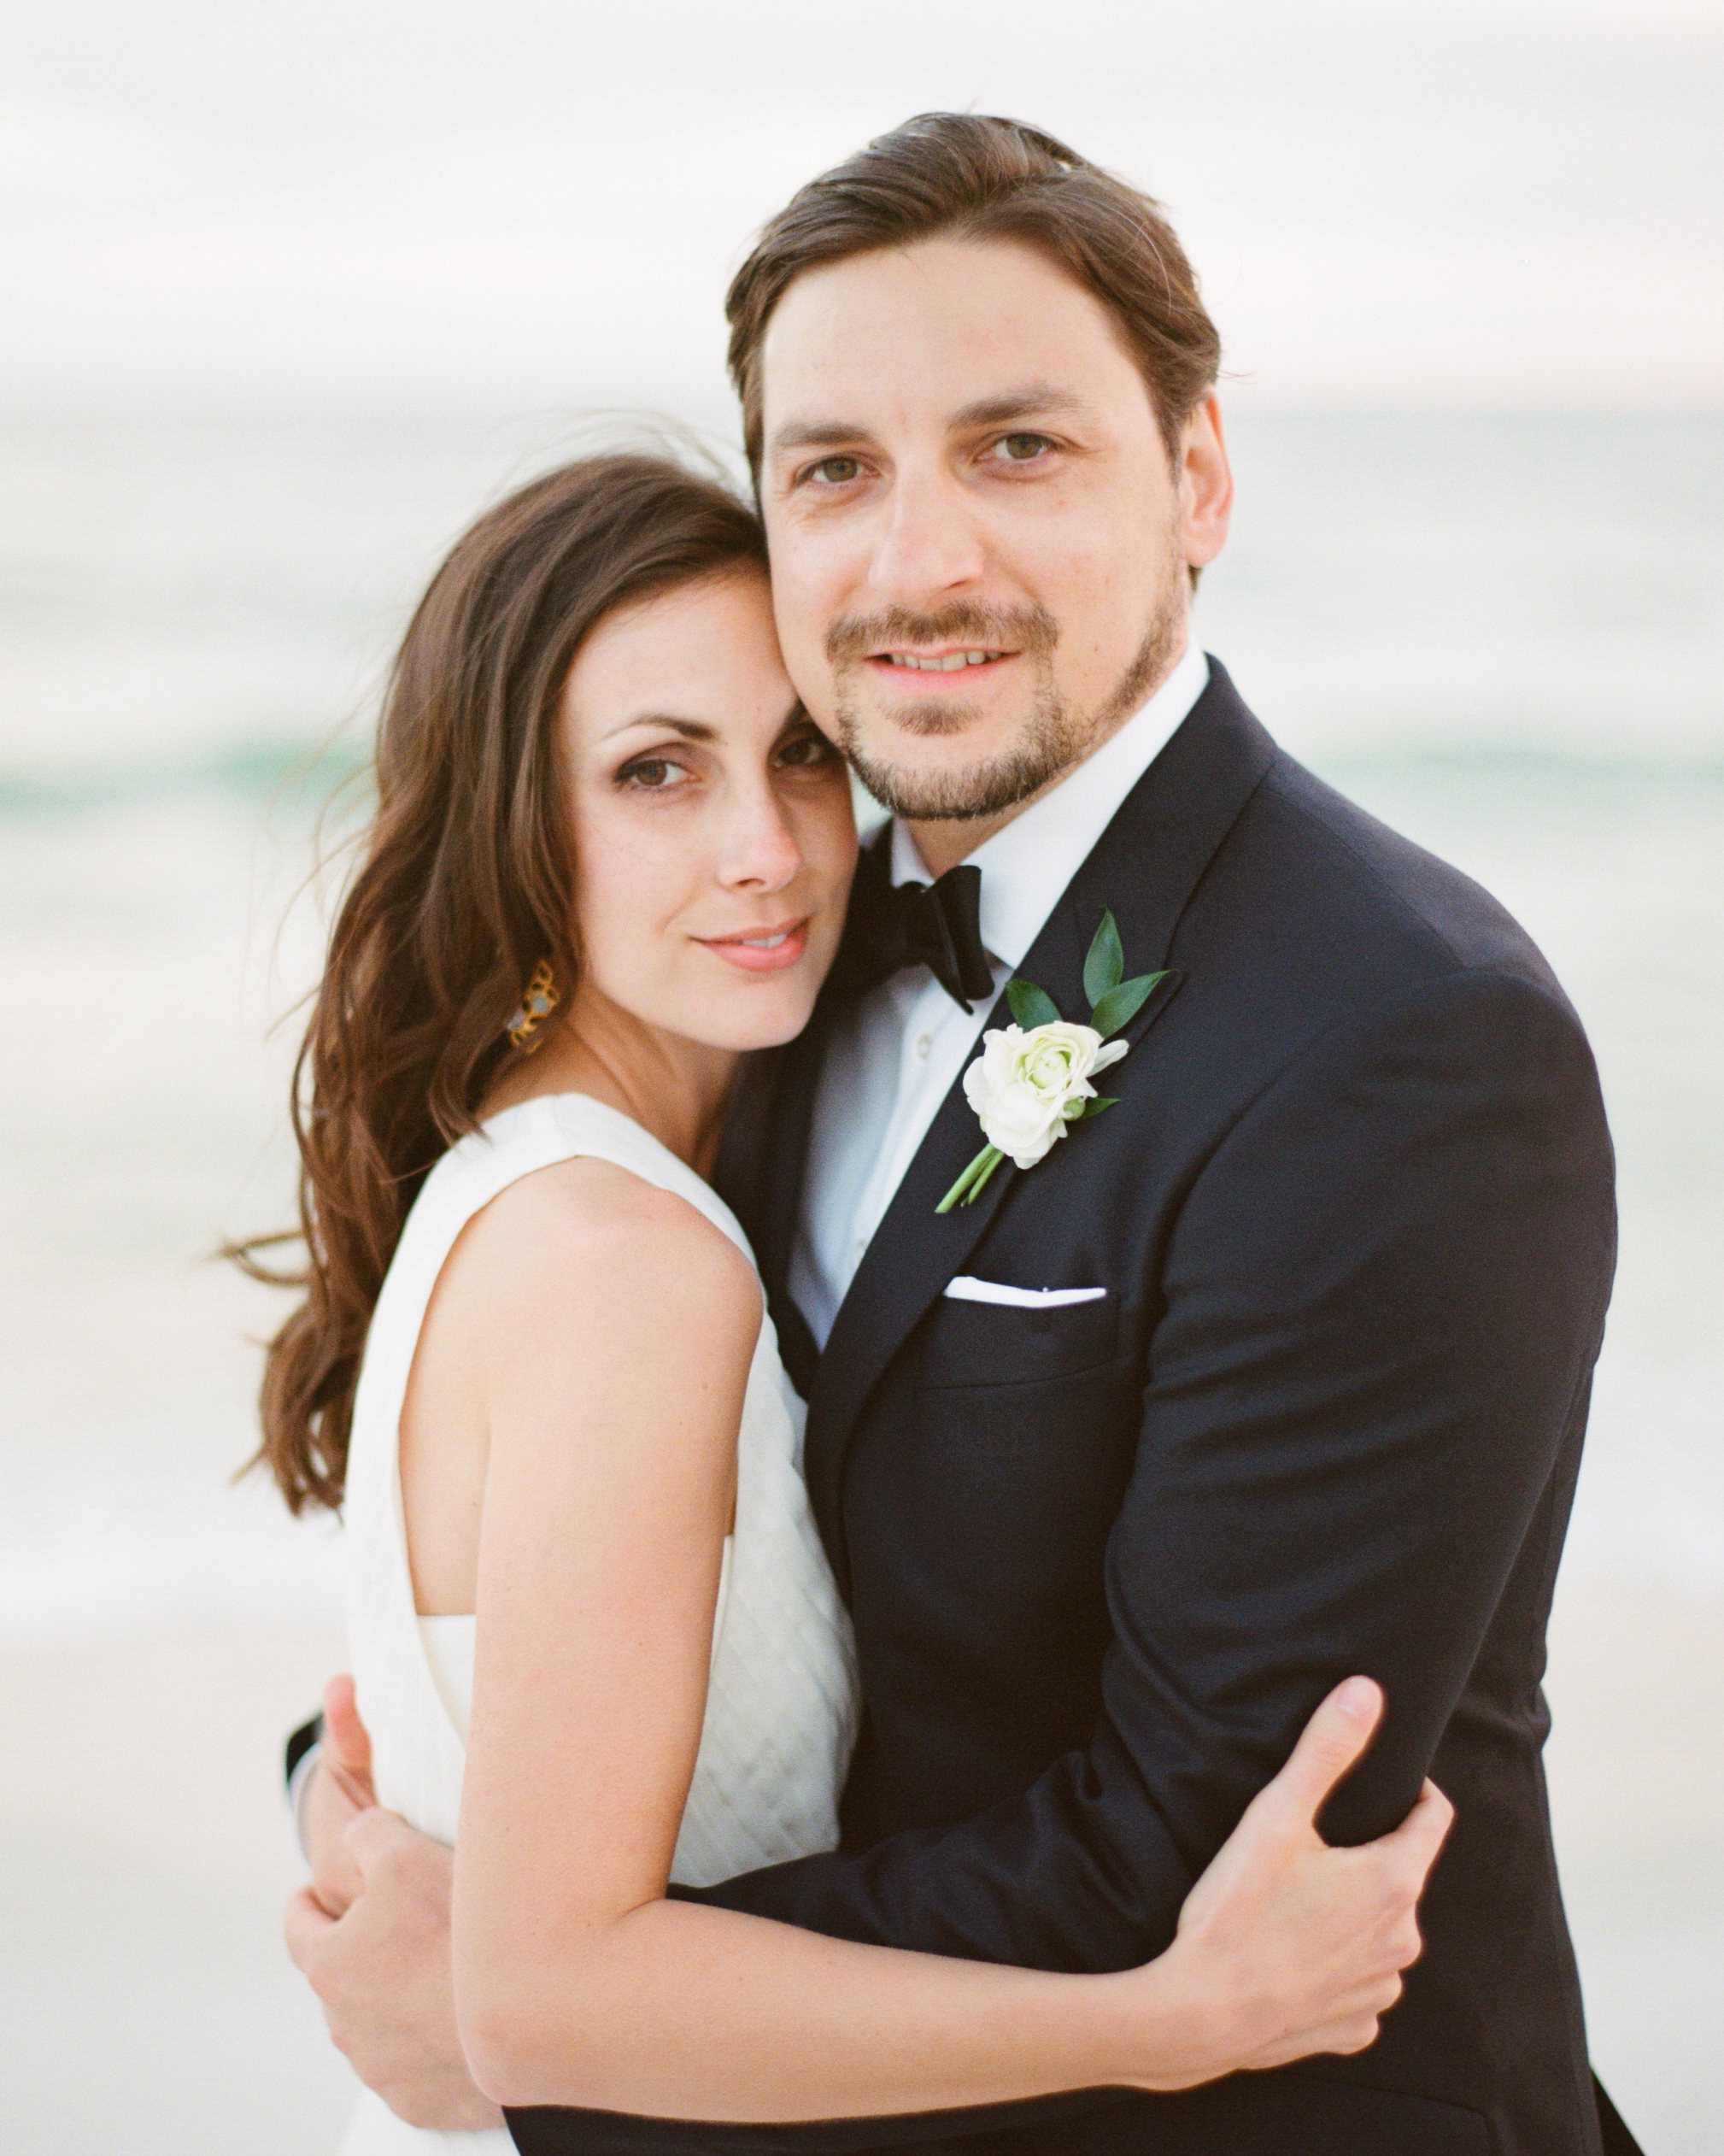 A Modern Florida Beach Wedding